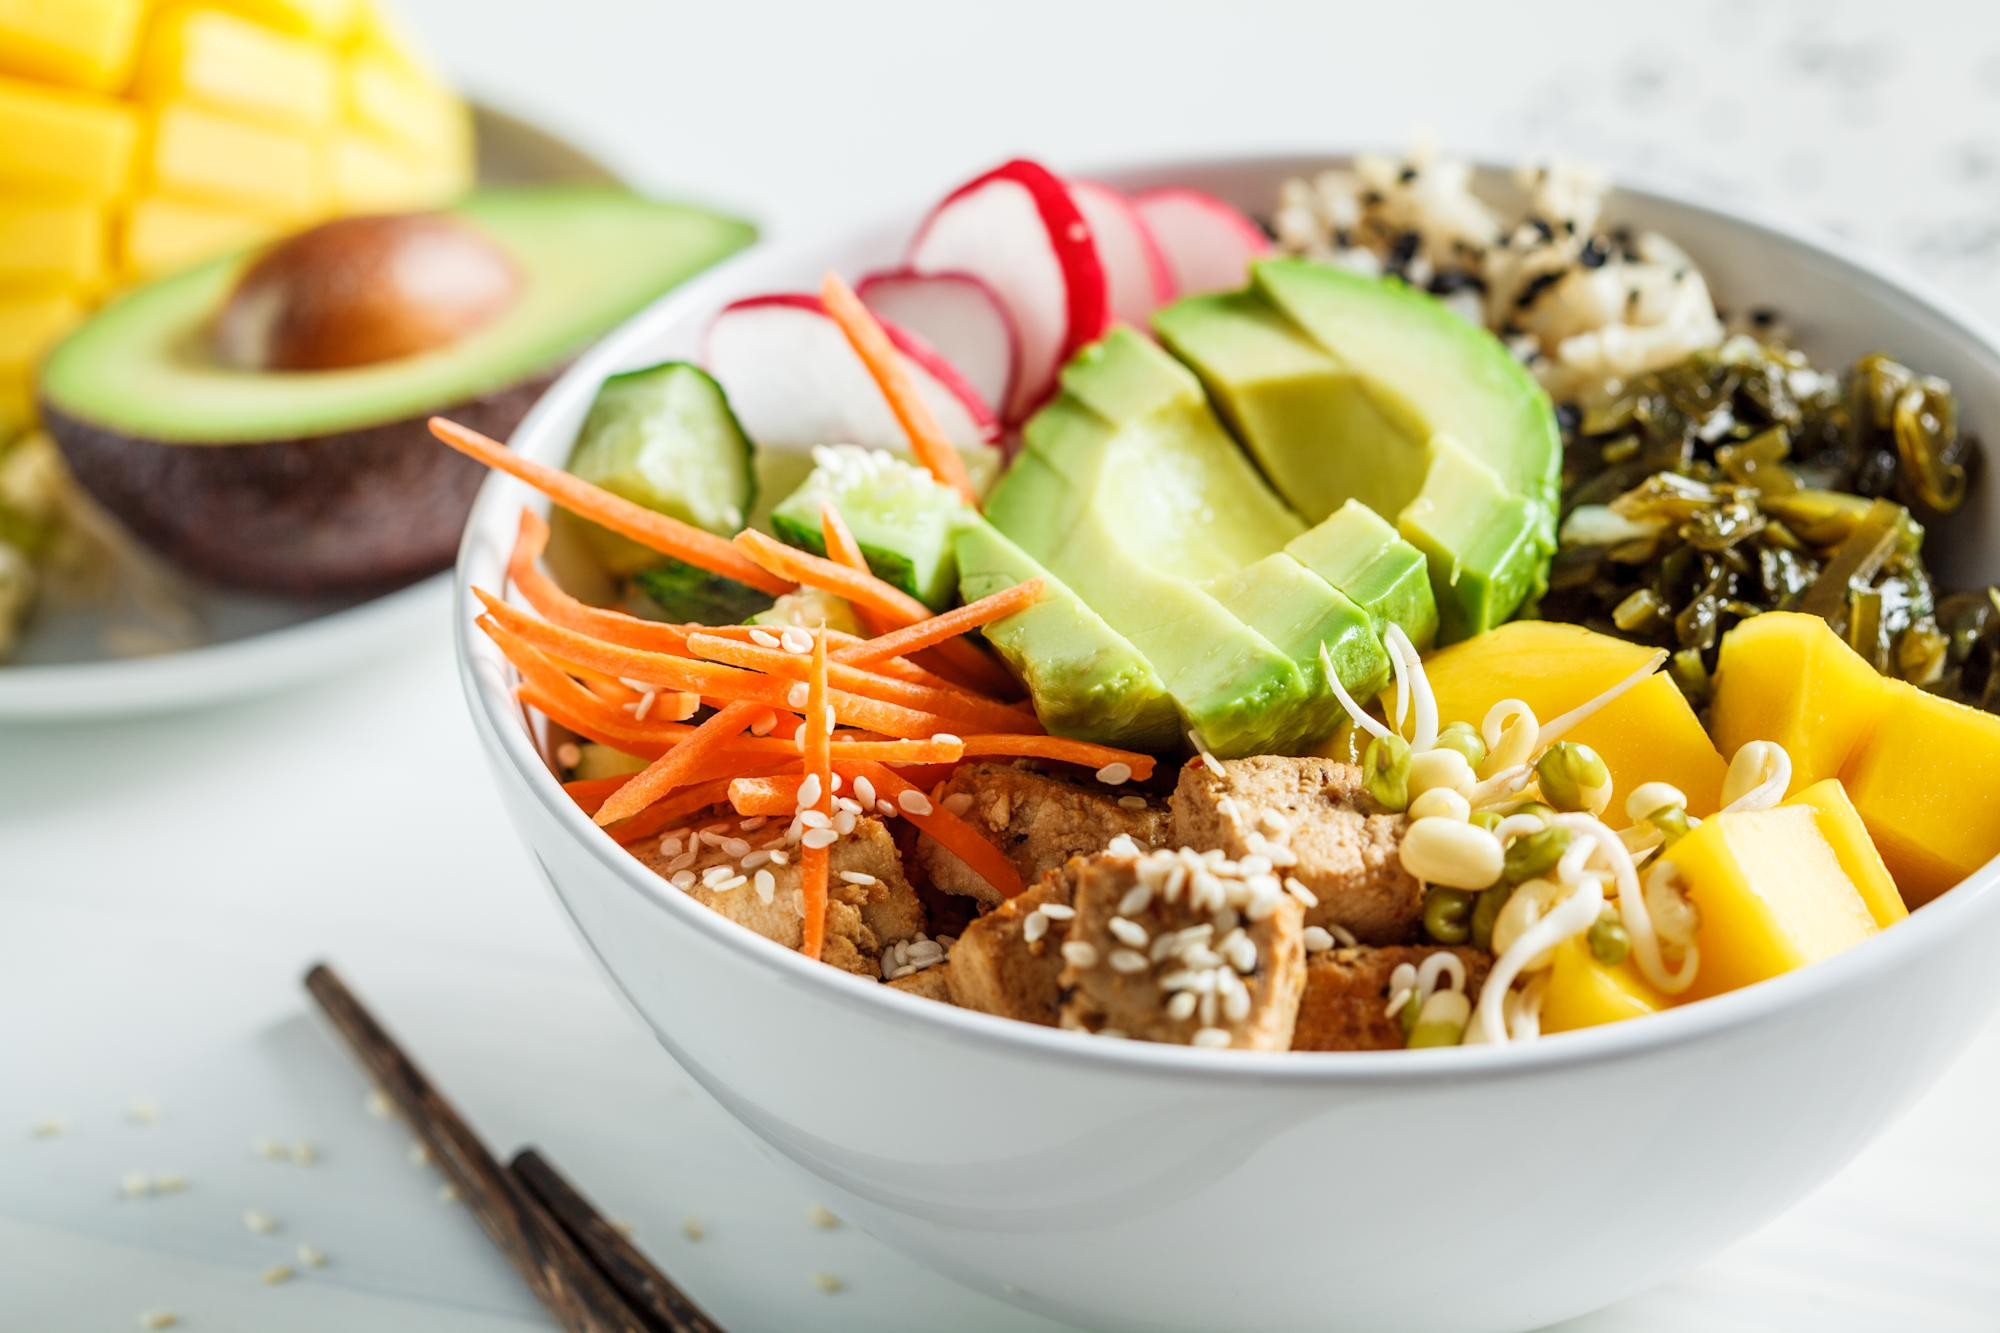 A vegan diet cuts severe COVID risk by 73%, study suggests